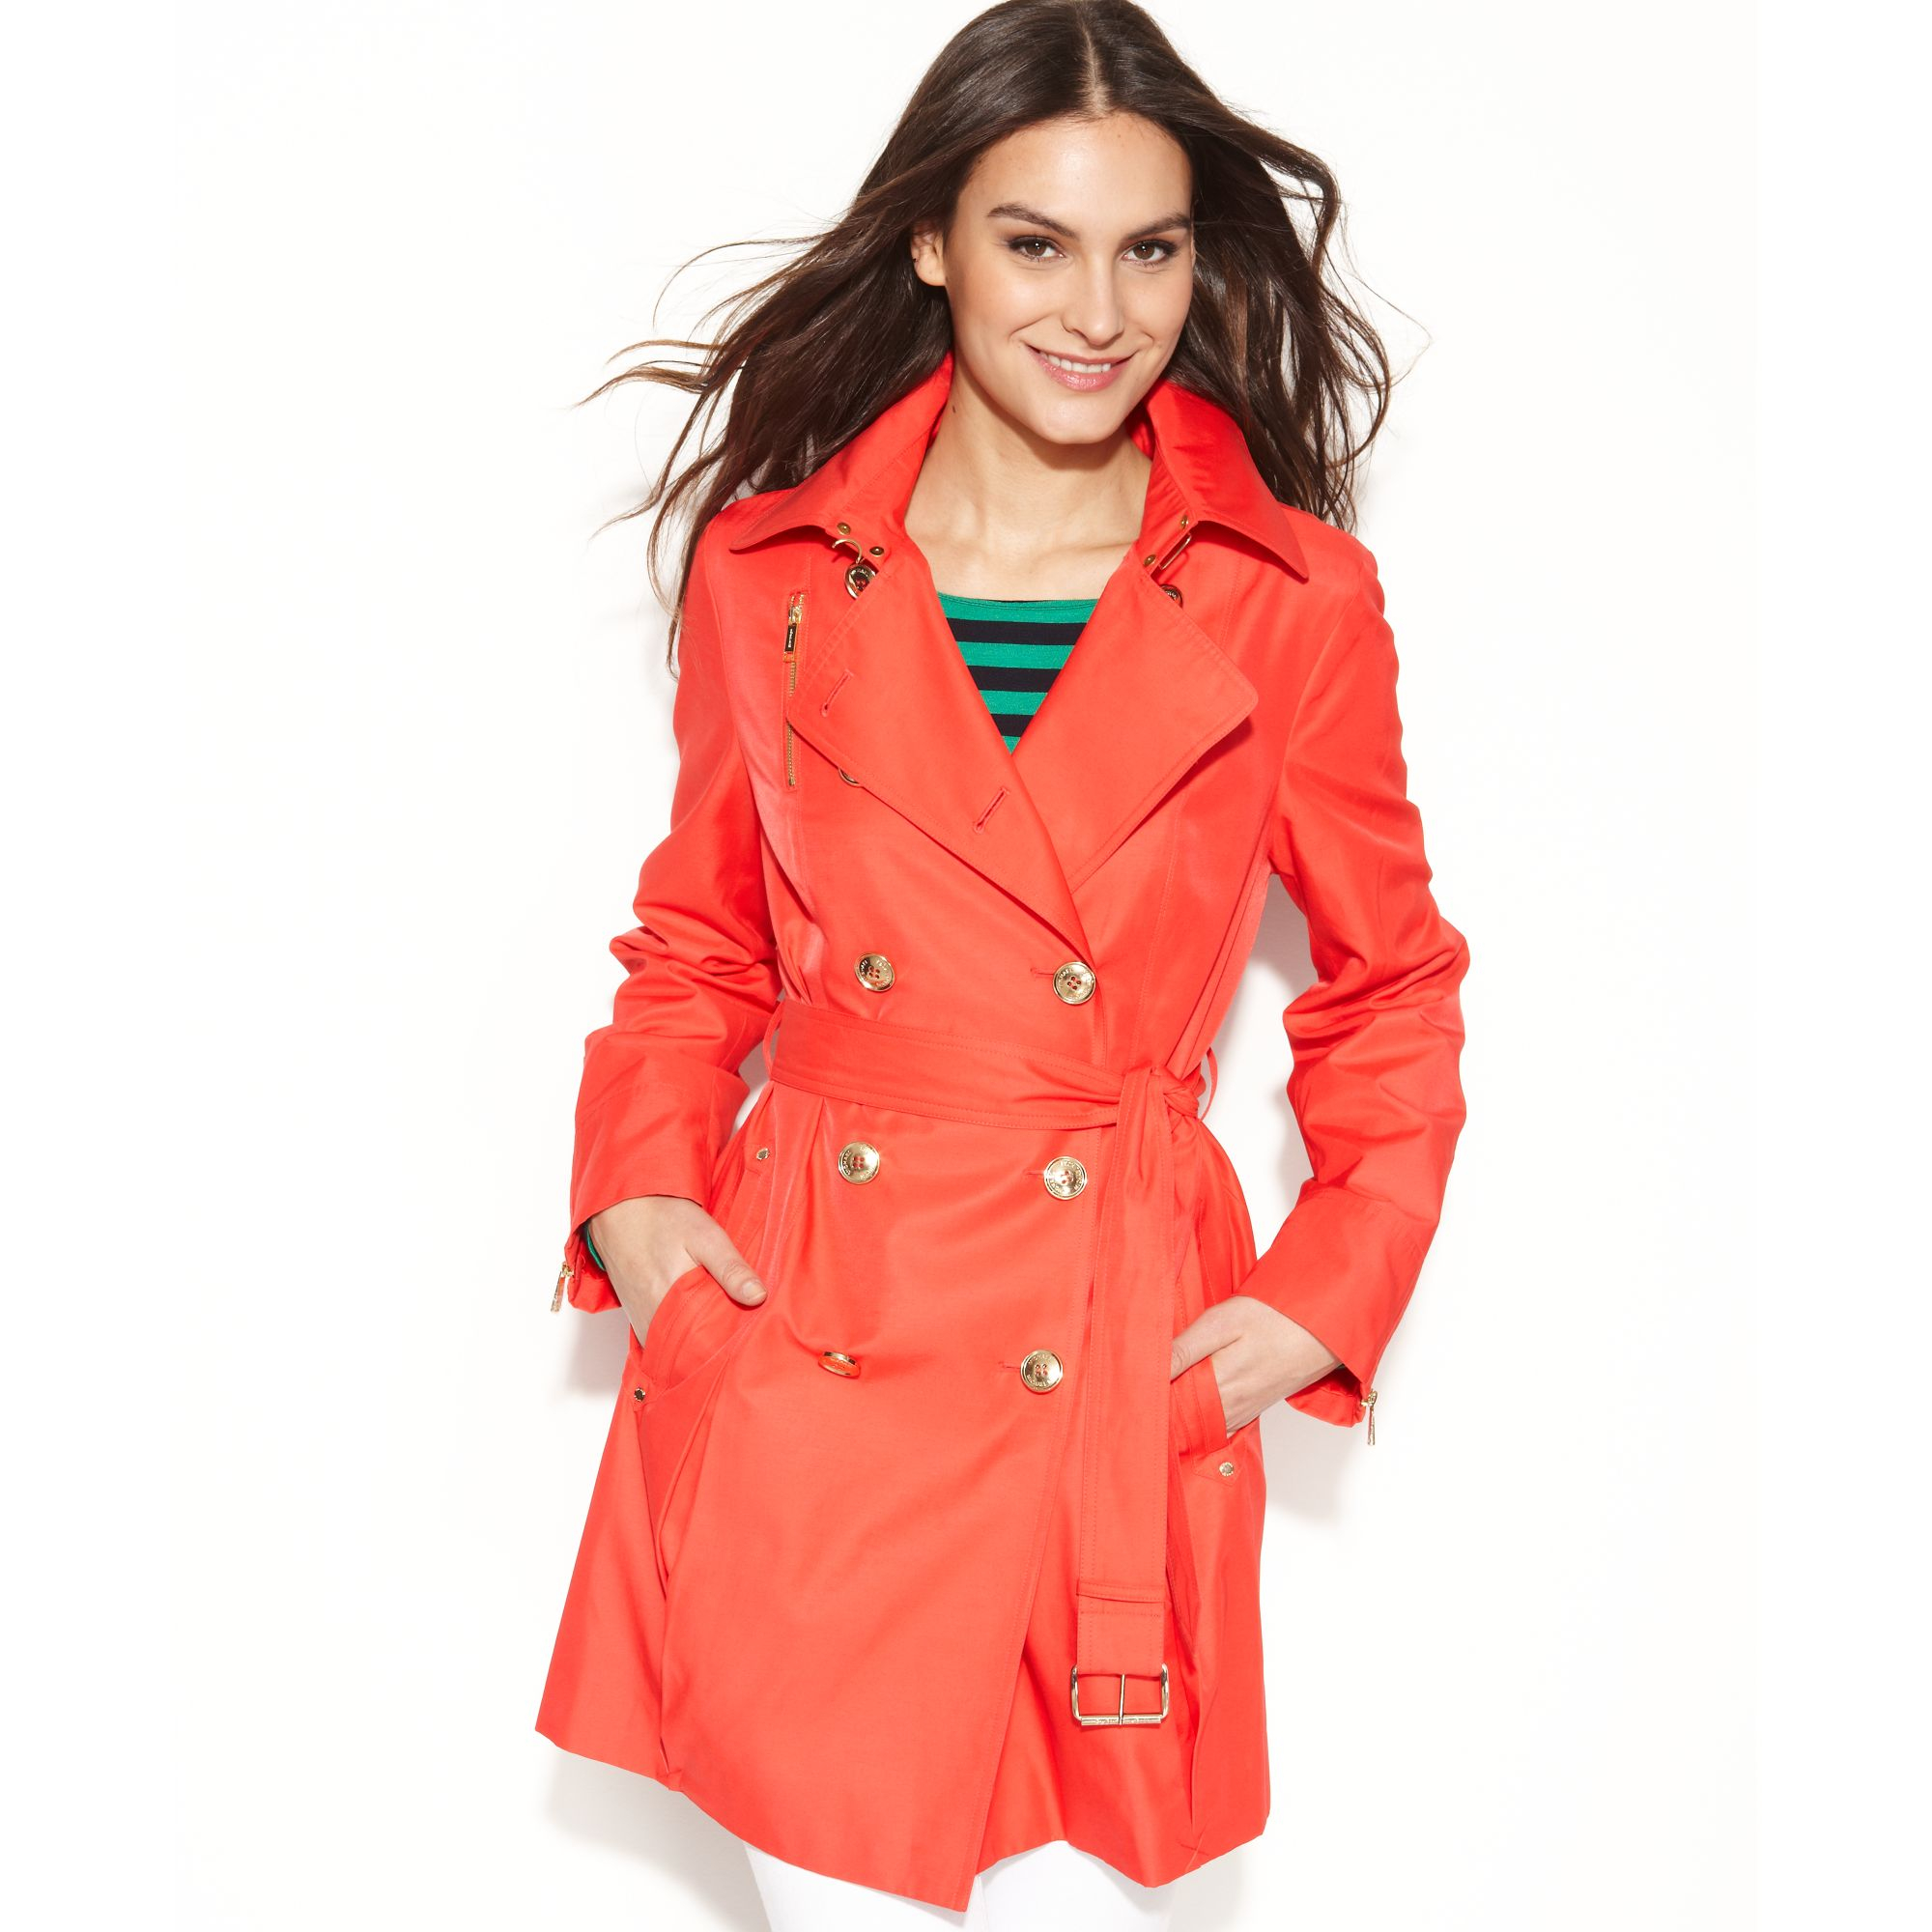 76ac7d2a7c8 Lyst - Michael Kors Michael Petite Double Breasted Belted Trench ...